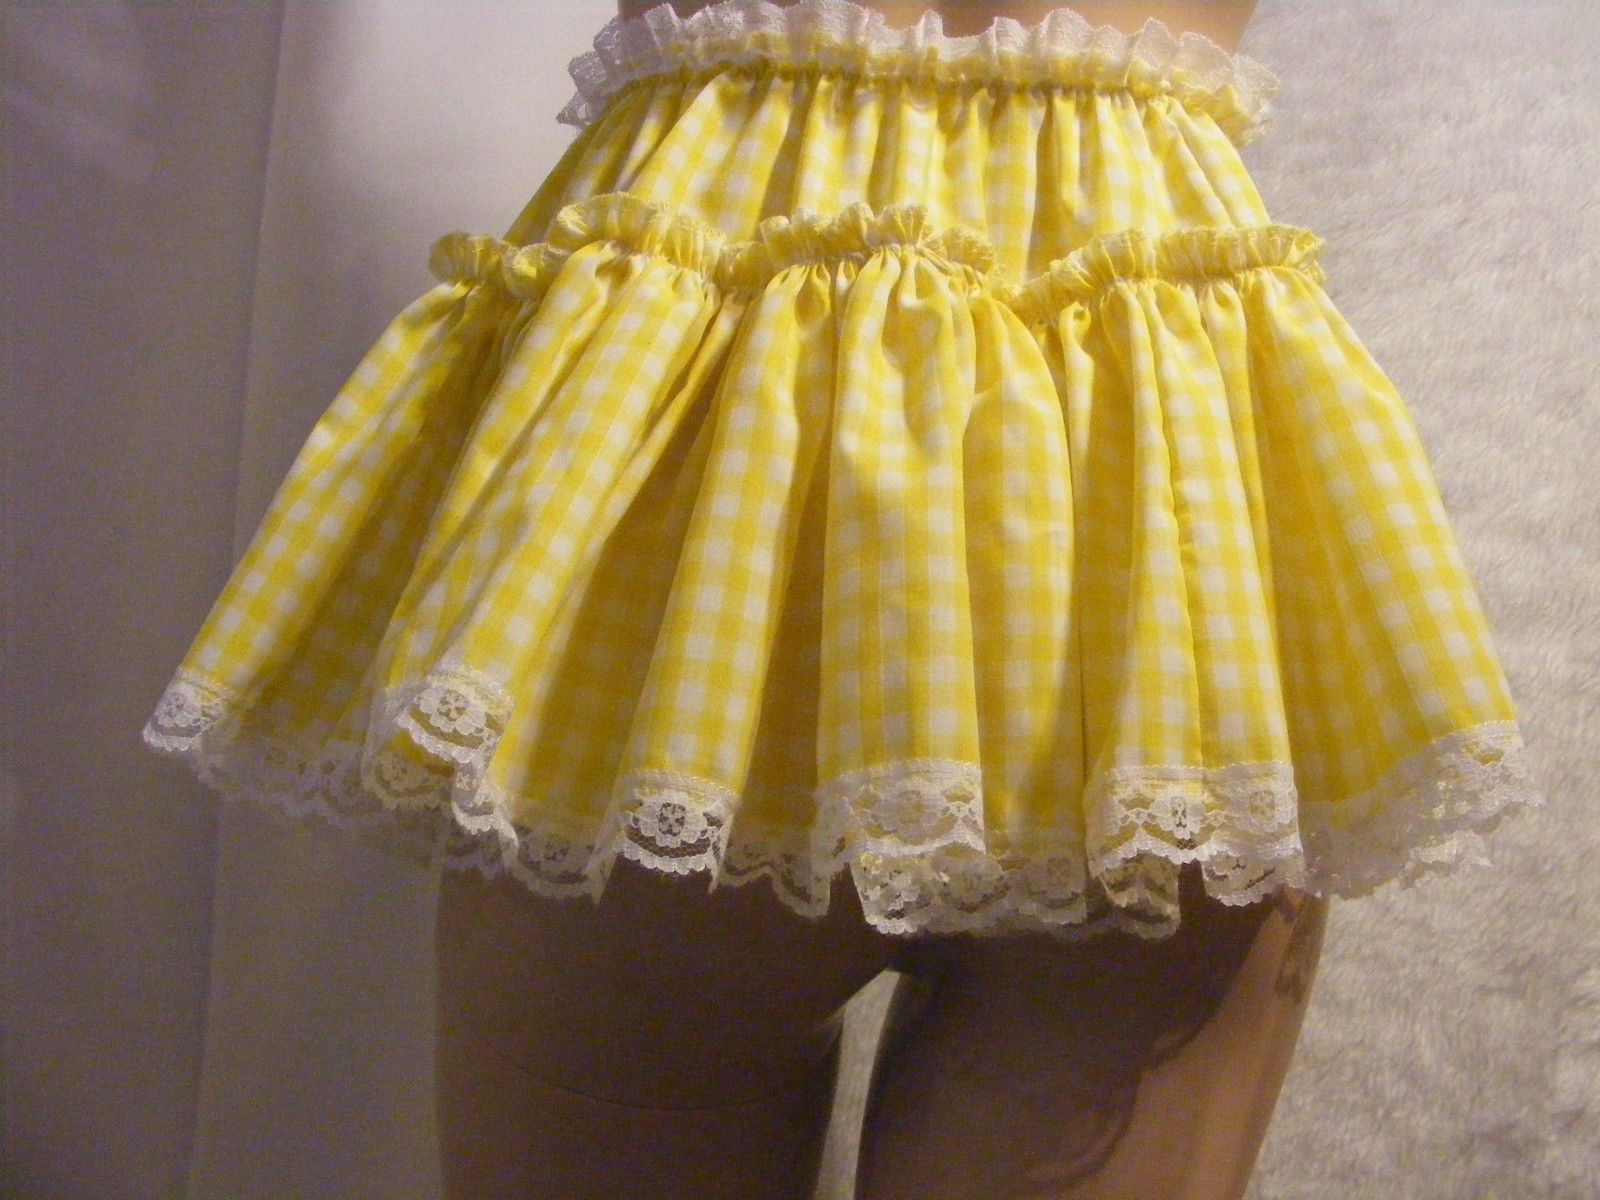 SISSY ADULT BABY SEXY FANCY DRESS YELLOW GINGHAM MICRO MINI FRILLY SKIRT 11